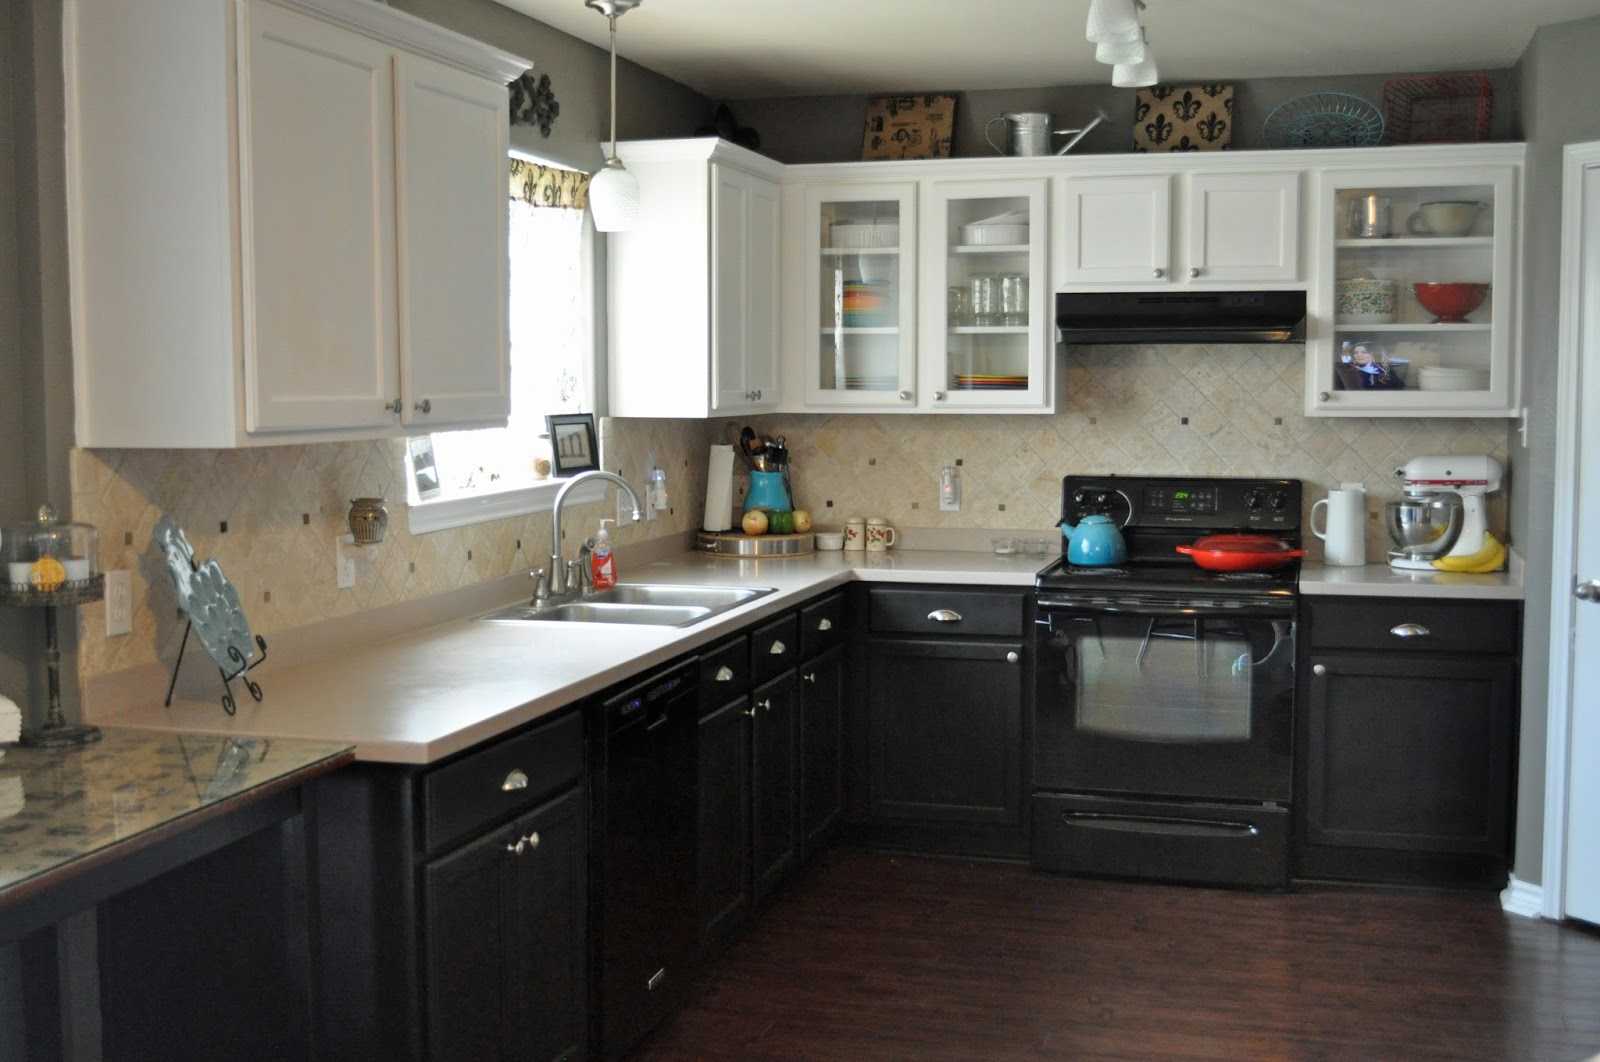 Black Bottom And White Top Kitchen Cabinets 100  Black White Kitchen Cabinets   Kitchen Luxury Mosaic